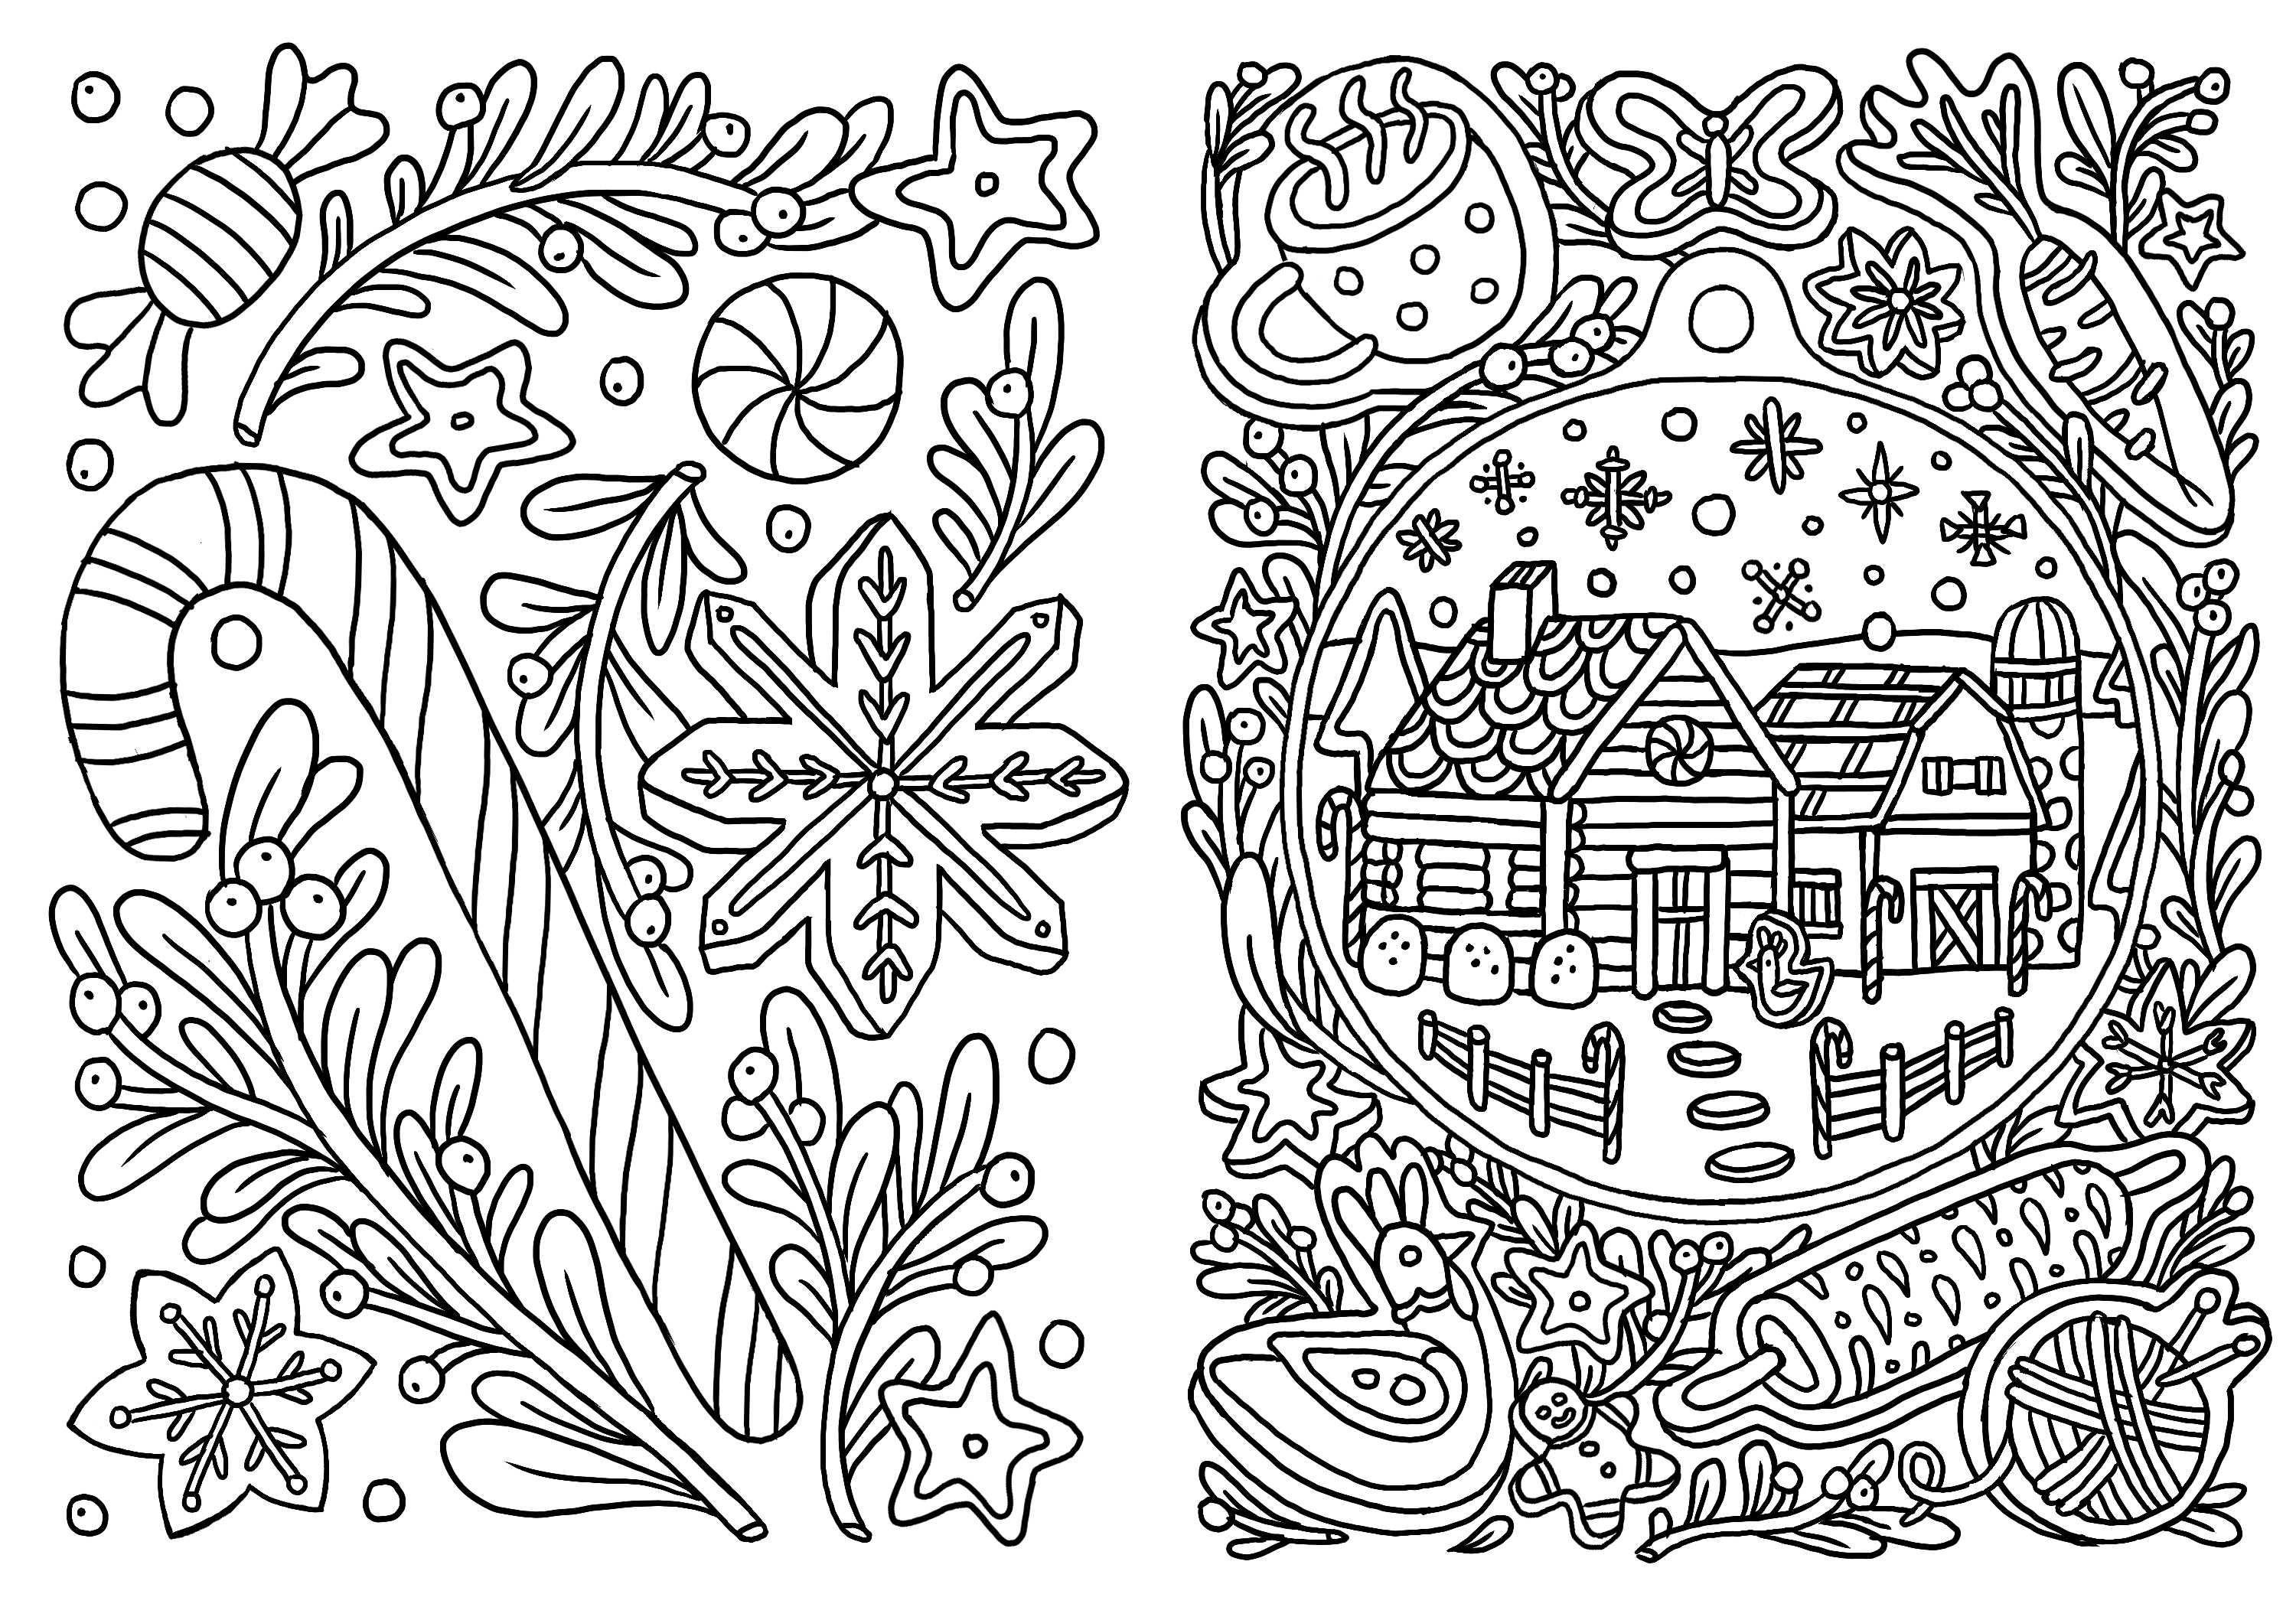 30DaysofGiving: COLOR-YOUR-OWN GREETING CARDS - Workman Publishing